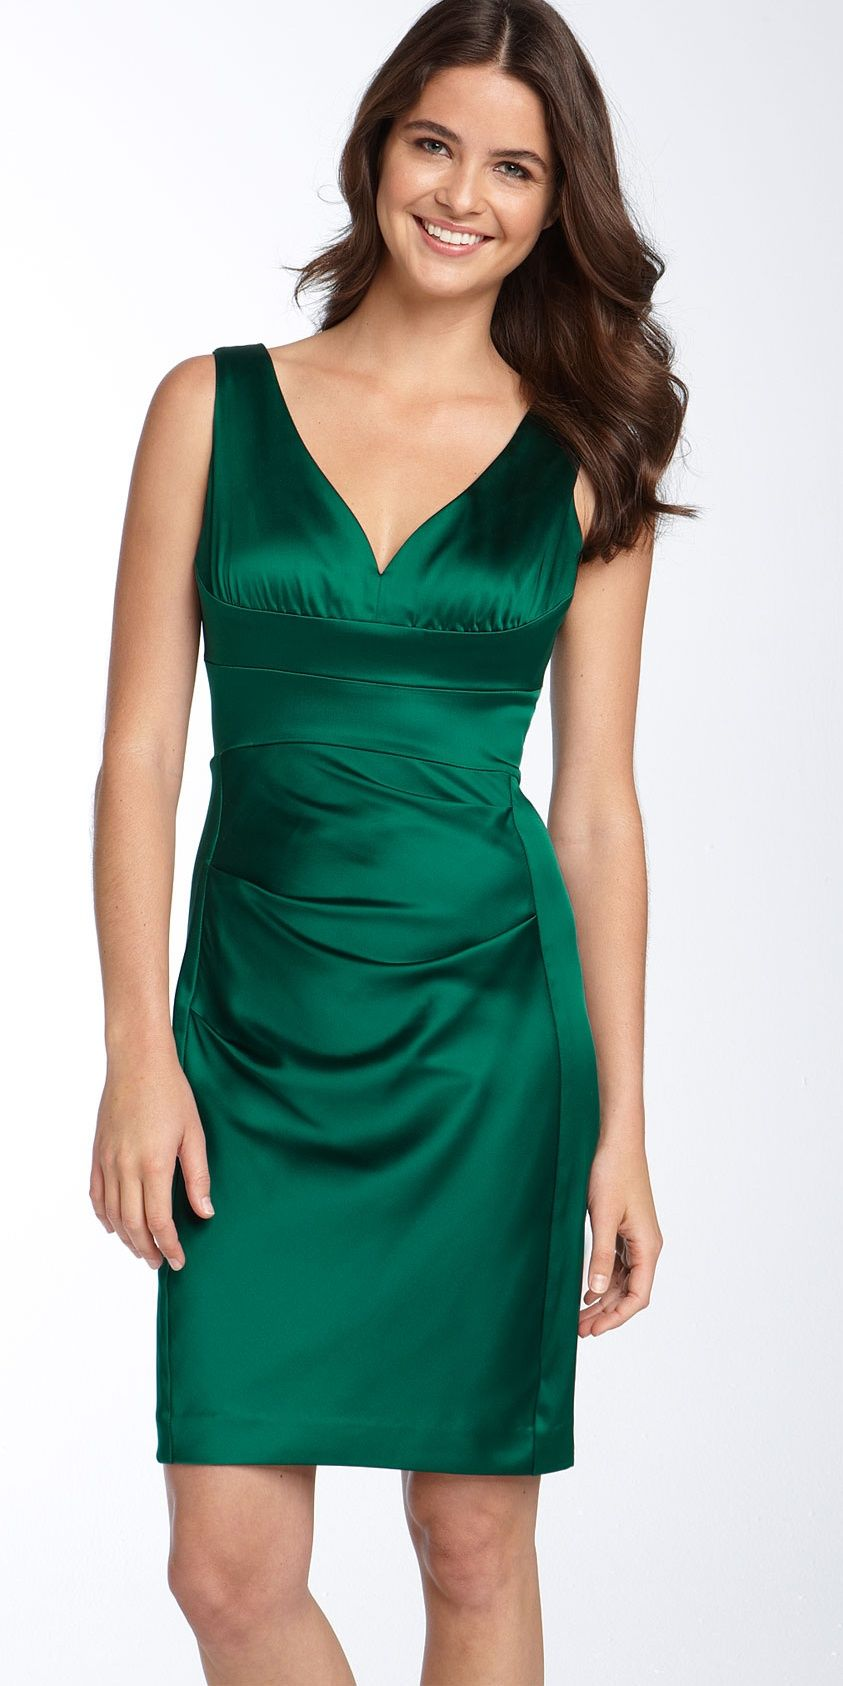 Dark Green Satin Dress | Glamorous Green Tourmaline | Pinterest ...